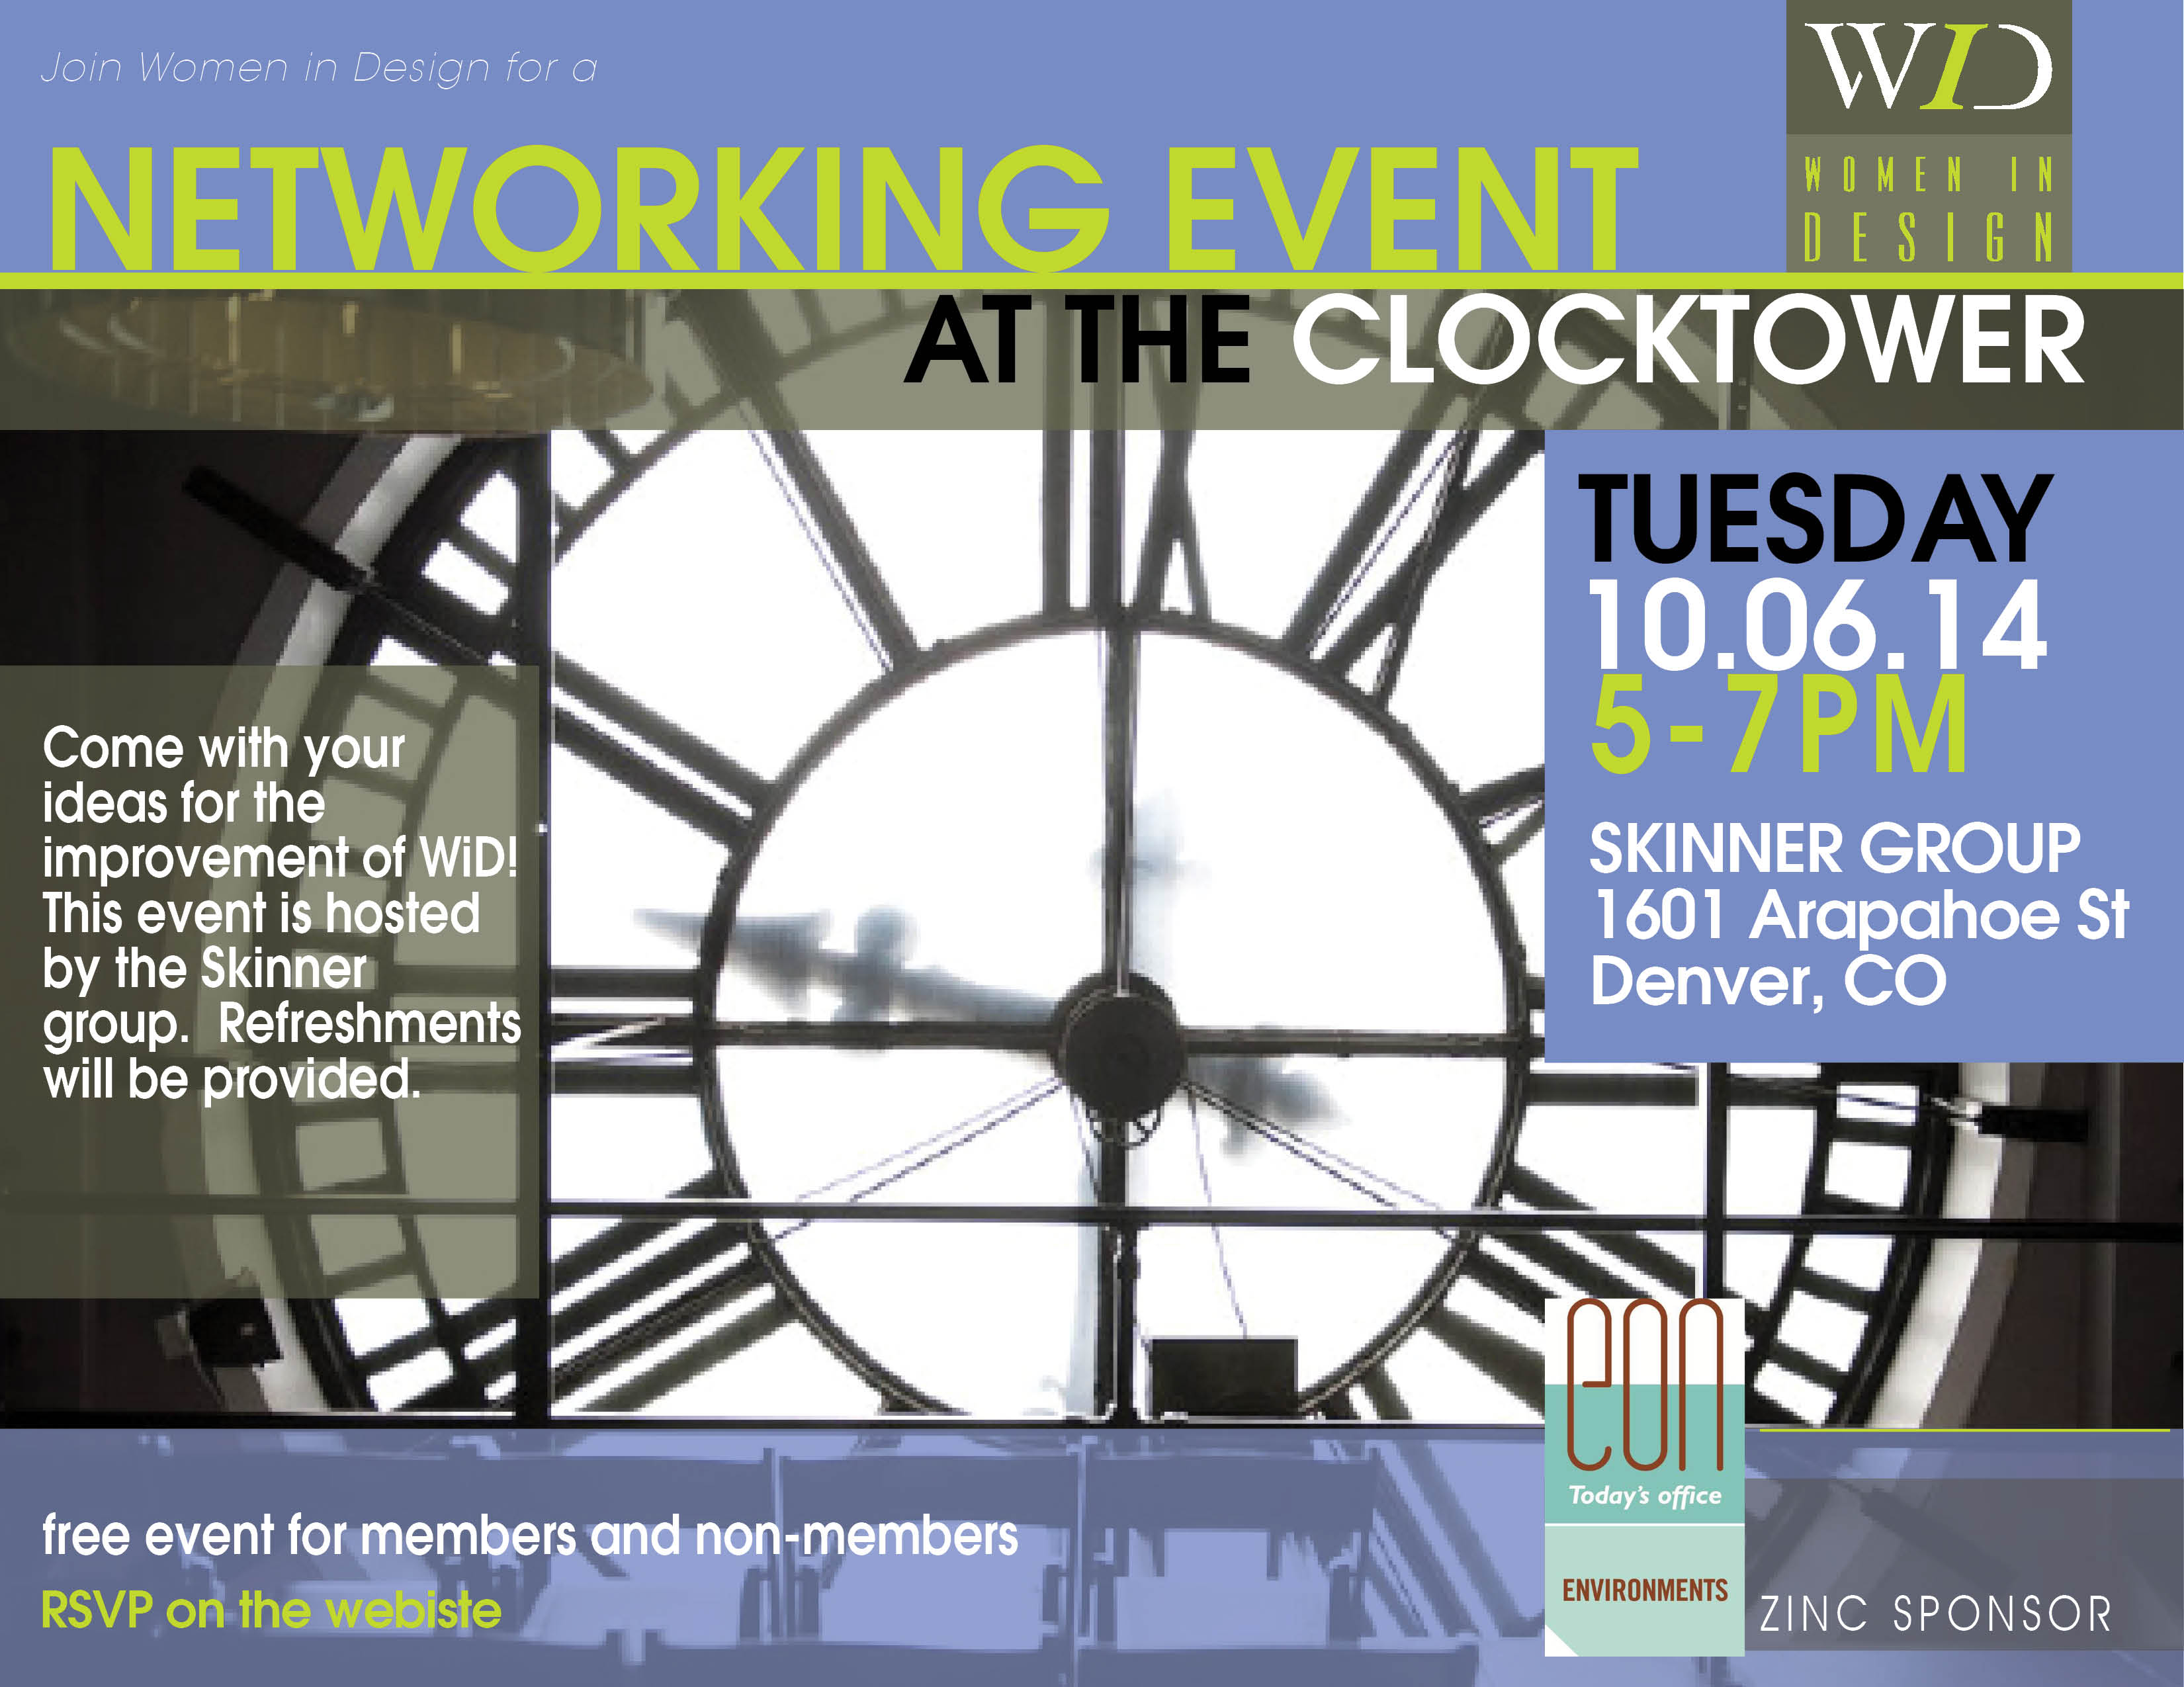 network event at clocktower